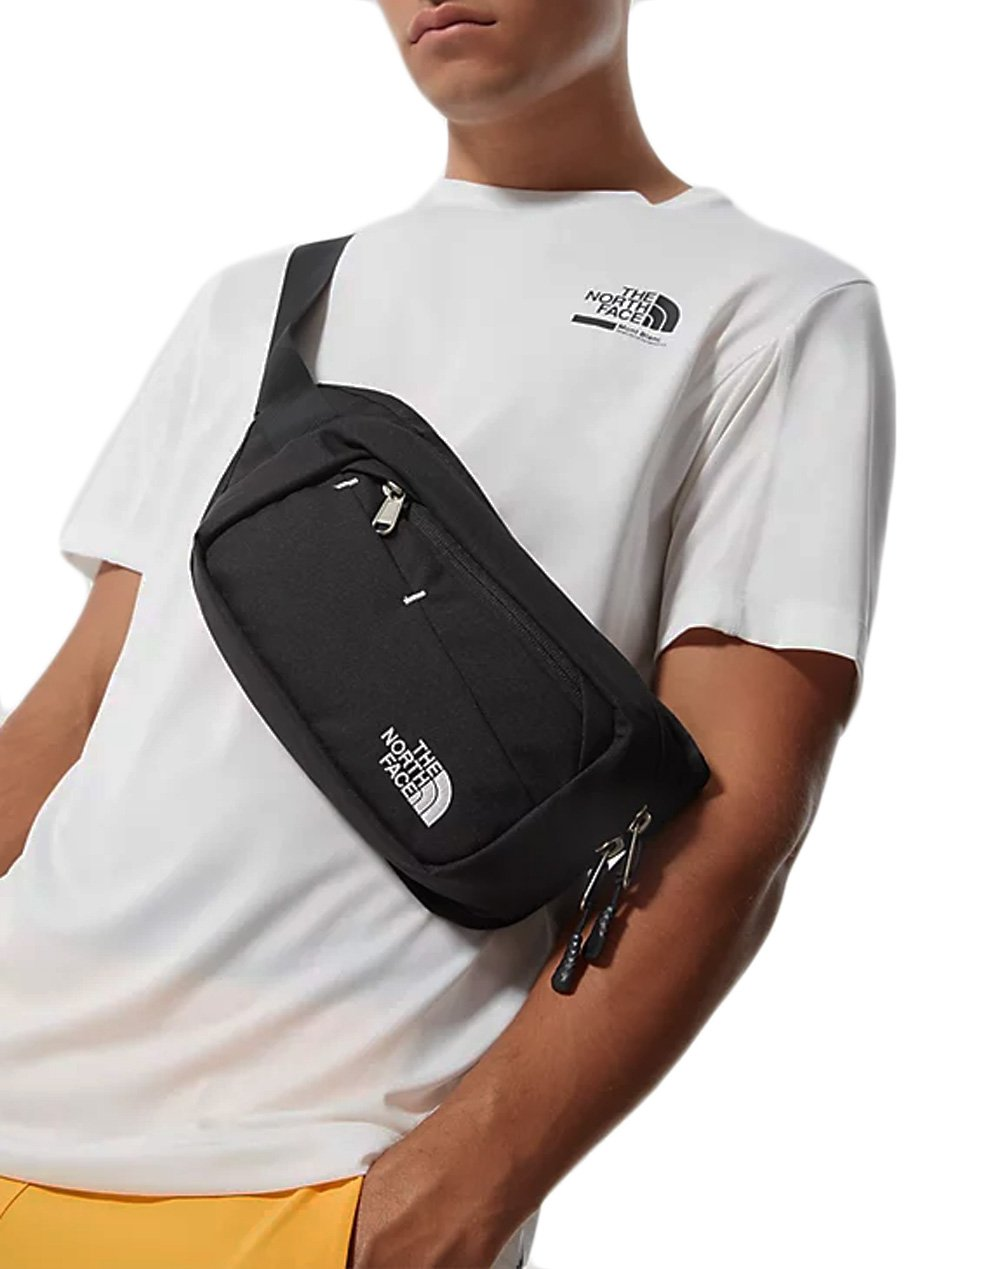 The North Face Bozer Hip Pack II  (NF0A2UCXKY41) Black/White